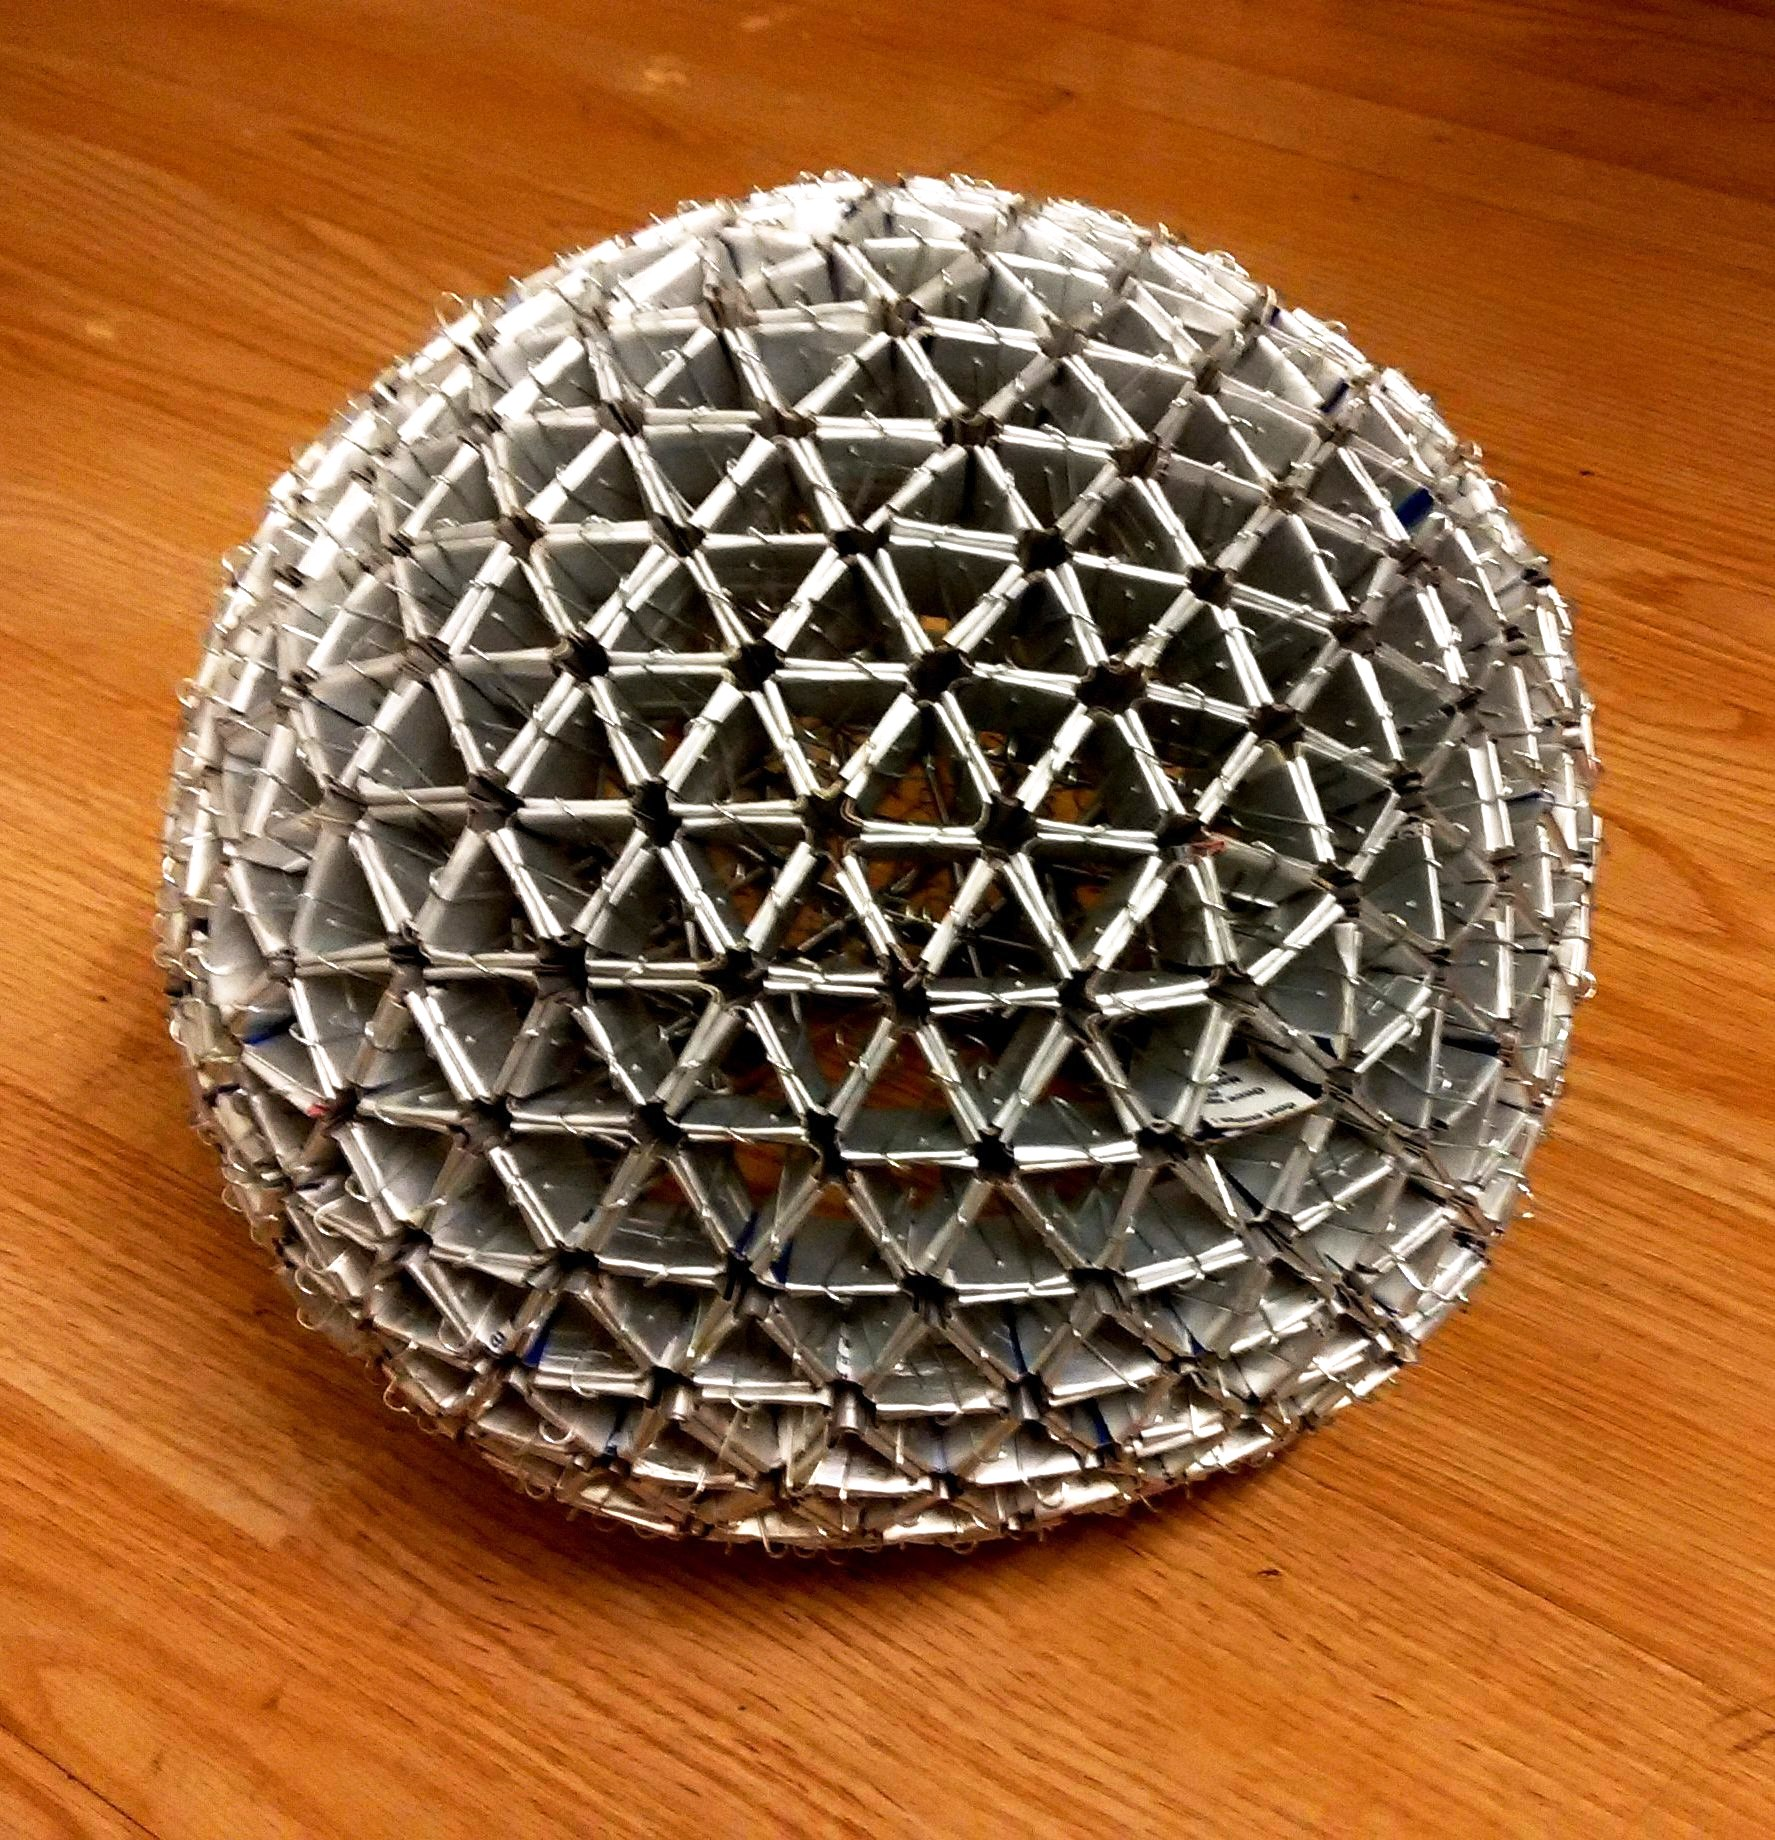 Picture of Forming the Sphere